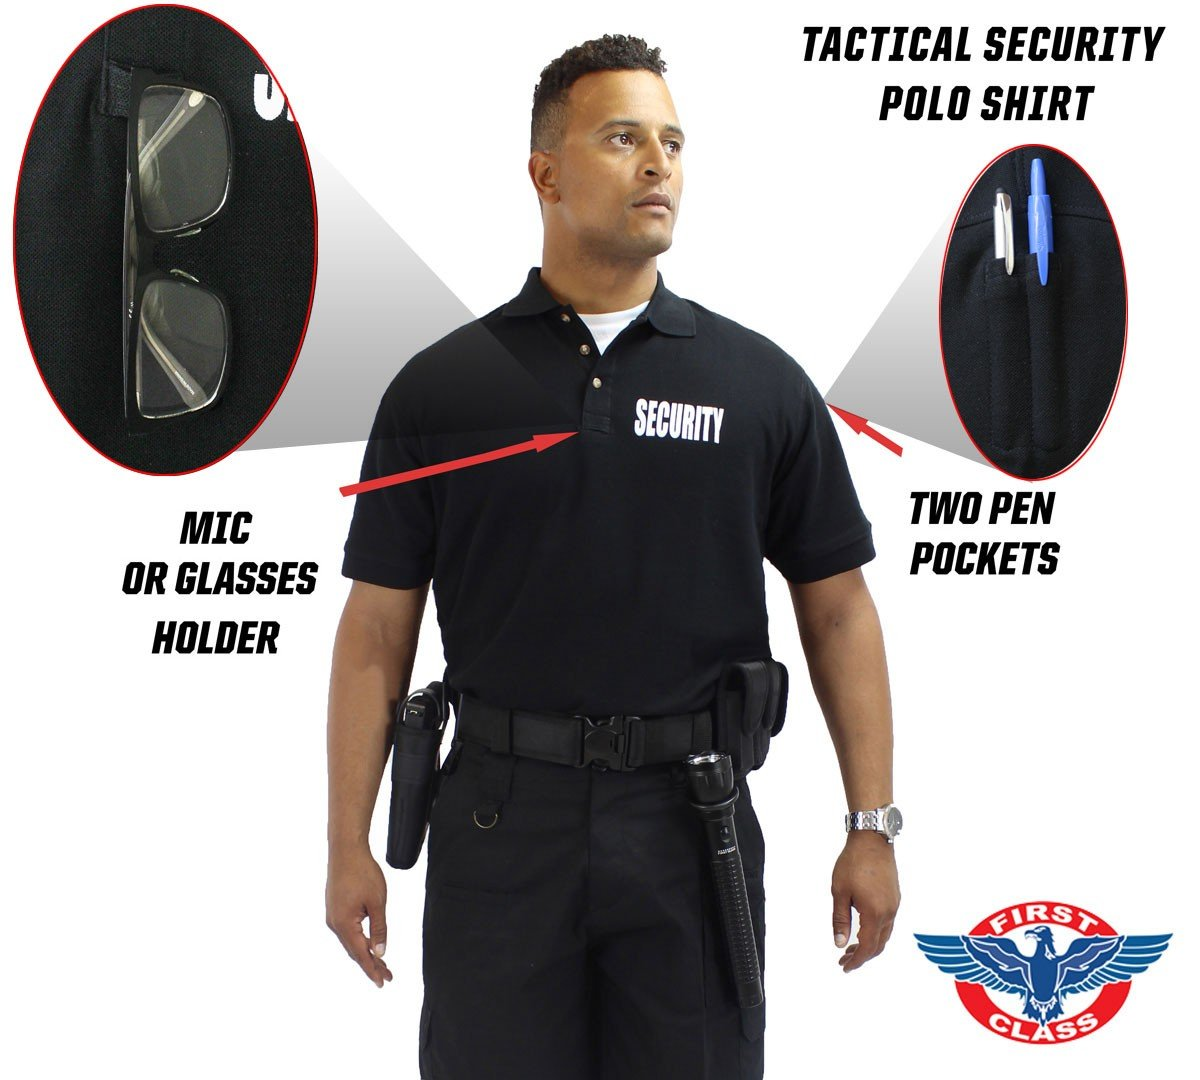 First Class Poly/Cotton 60%/40% Tactical Security Polo Shirts (Small, Black/White Security)